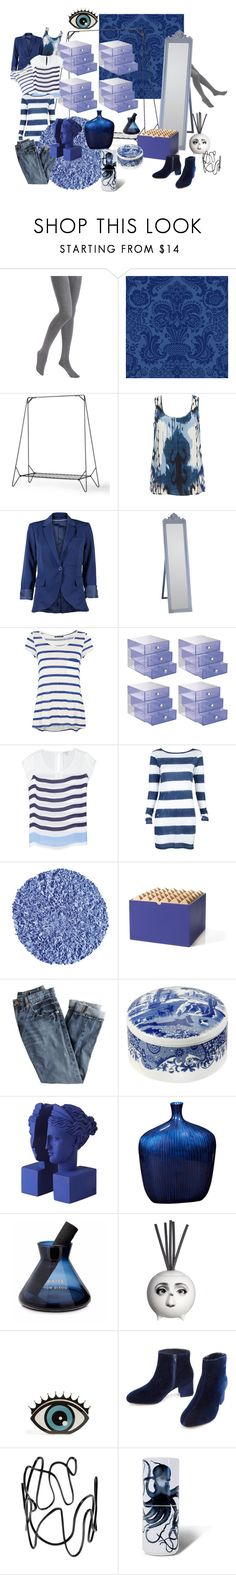 """indigo closet"" by leahrae-1 ❤ liked on Polyvore featuring interior, interiors, interior design, home, home decor, interior decorating, Hue, Cole & Son, Menu and Altuzarra"